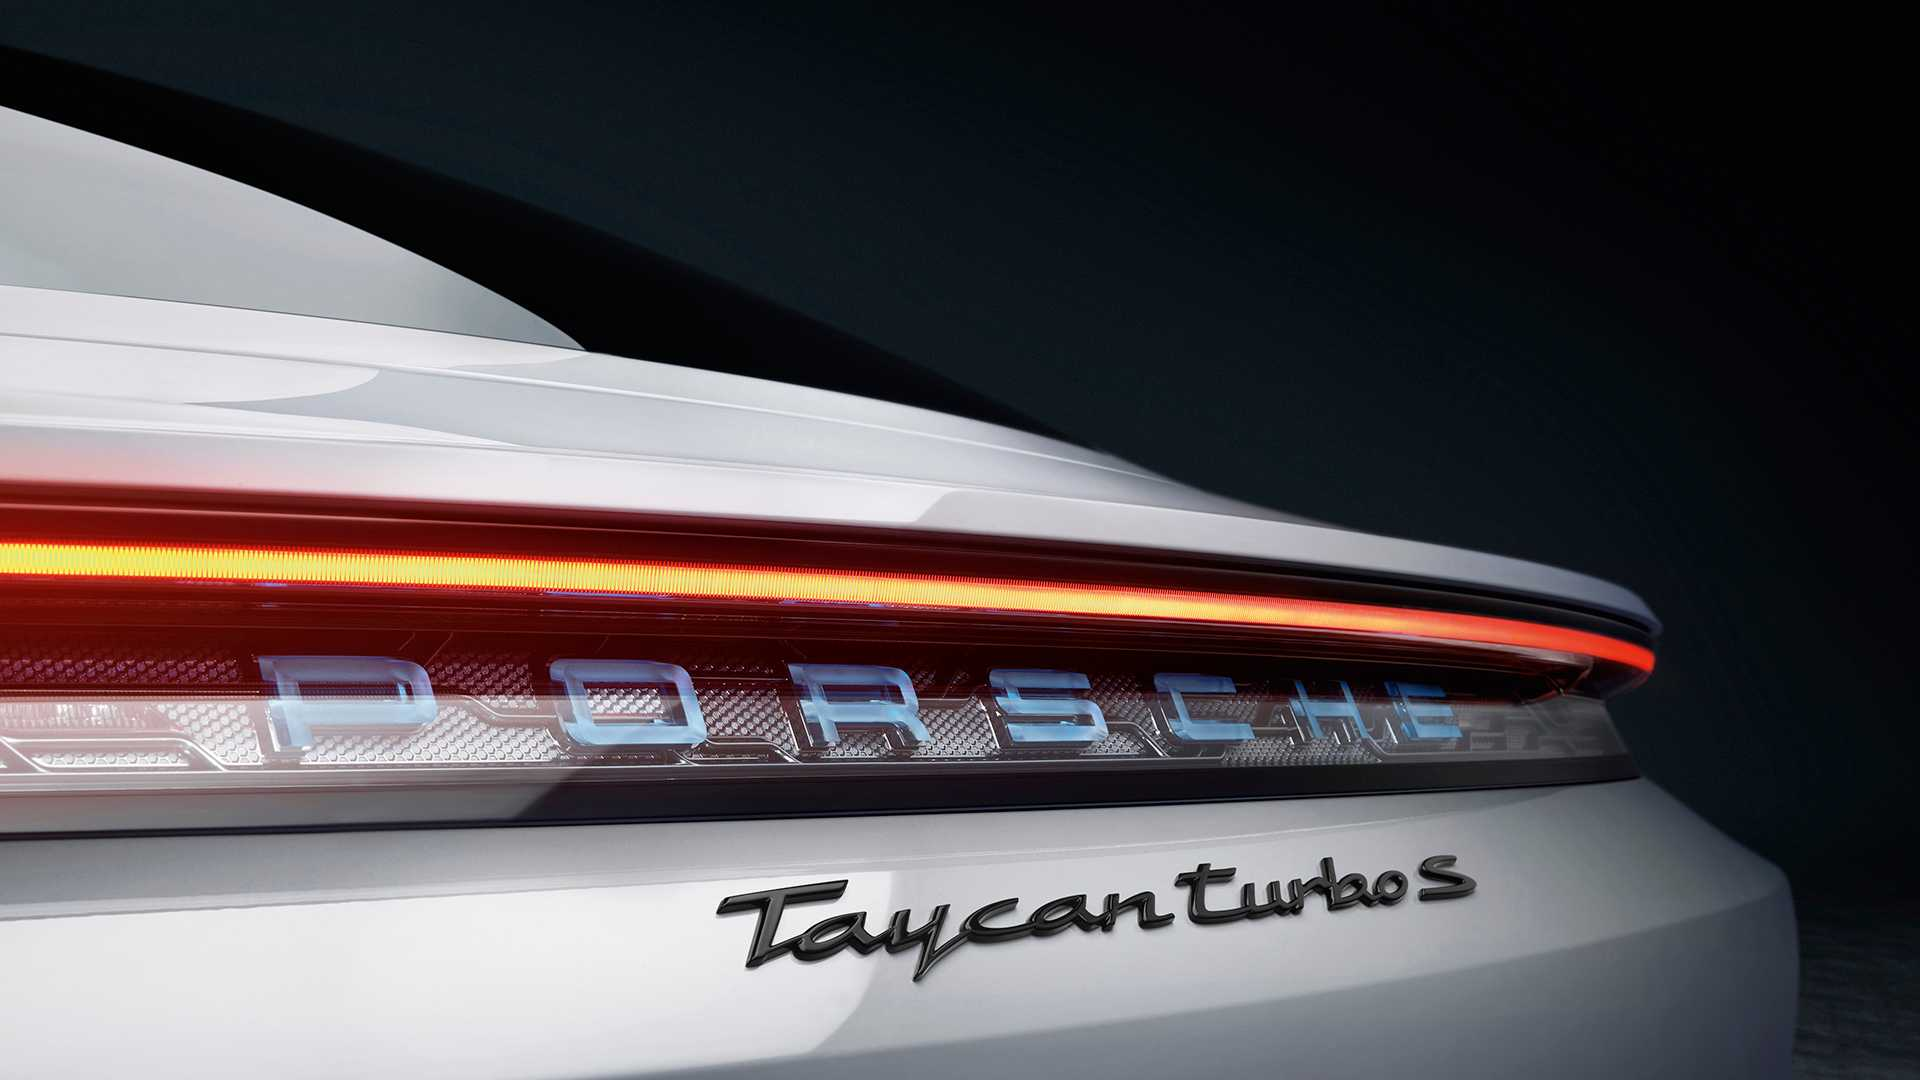 The Taycan is finally here, but what should Porsche electrify next?